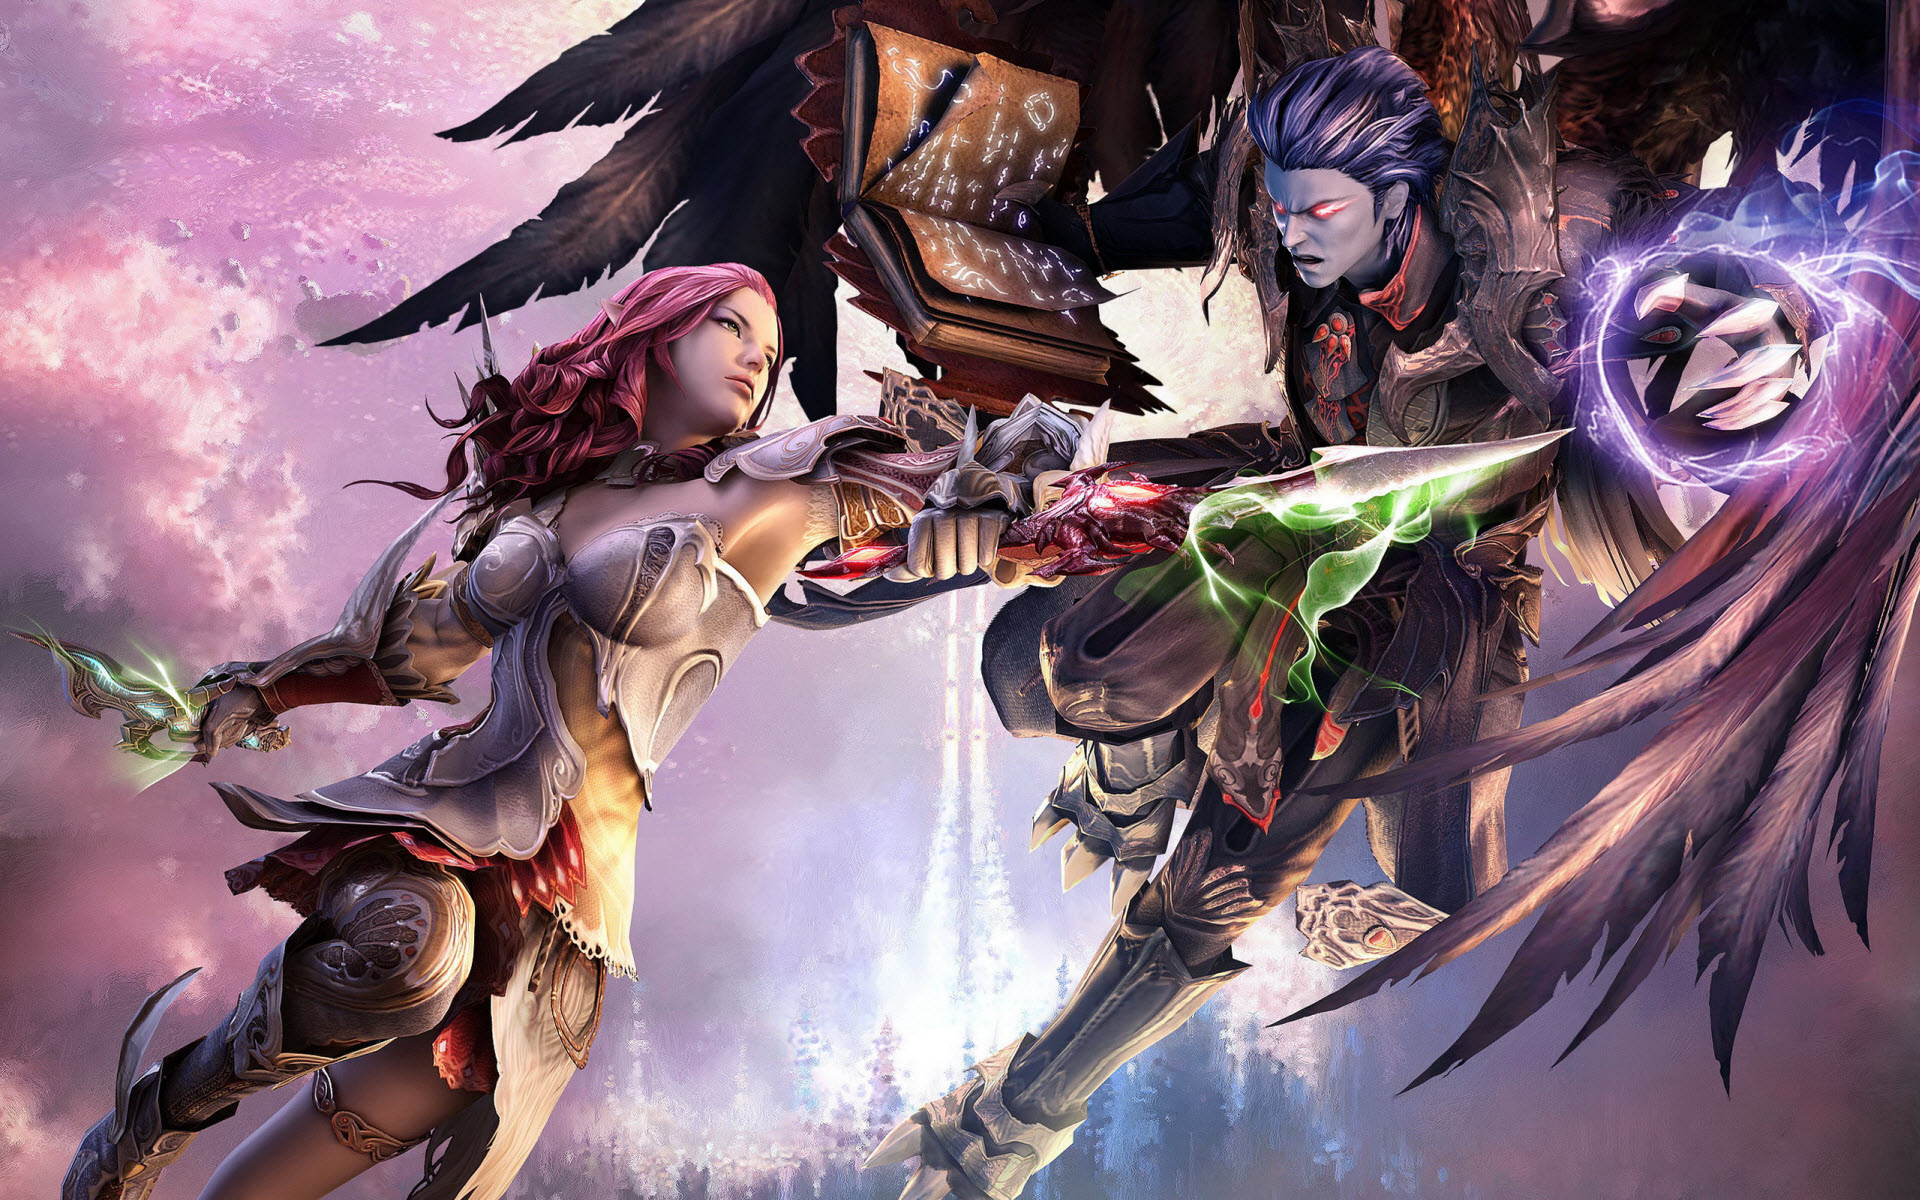 Aion Tower of Eternity wallpaper. Aion Online Widescreen HD